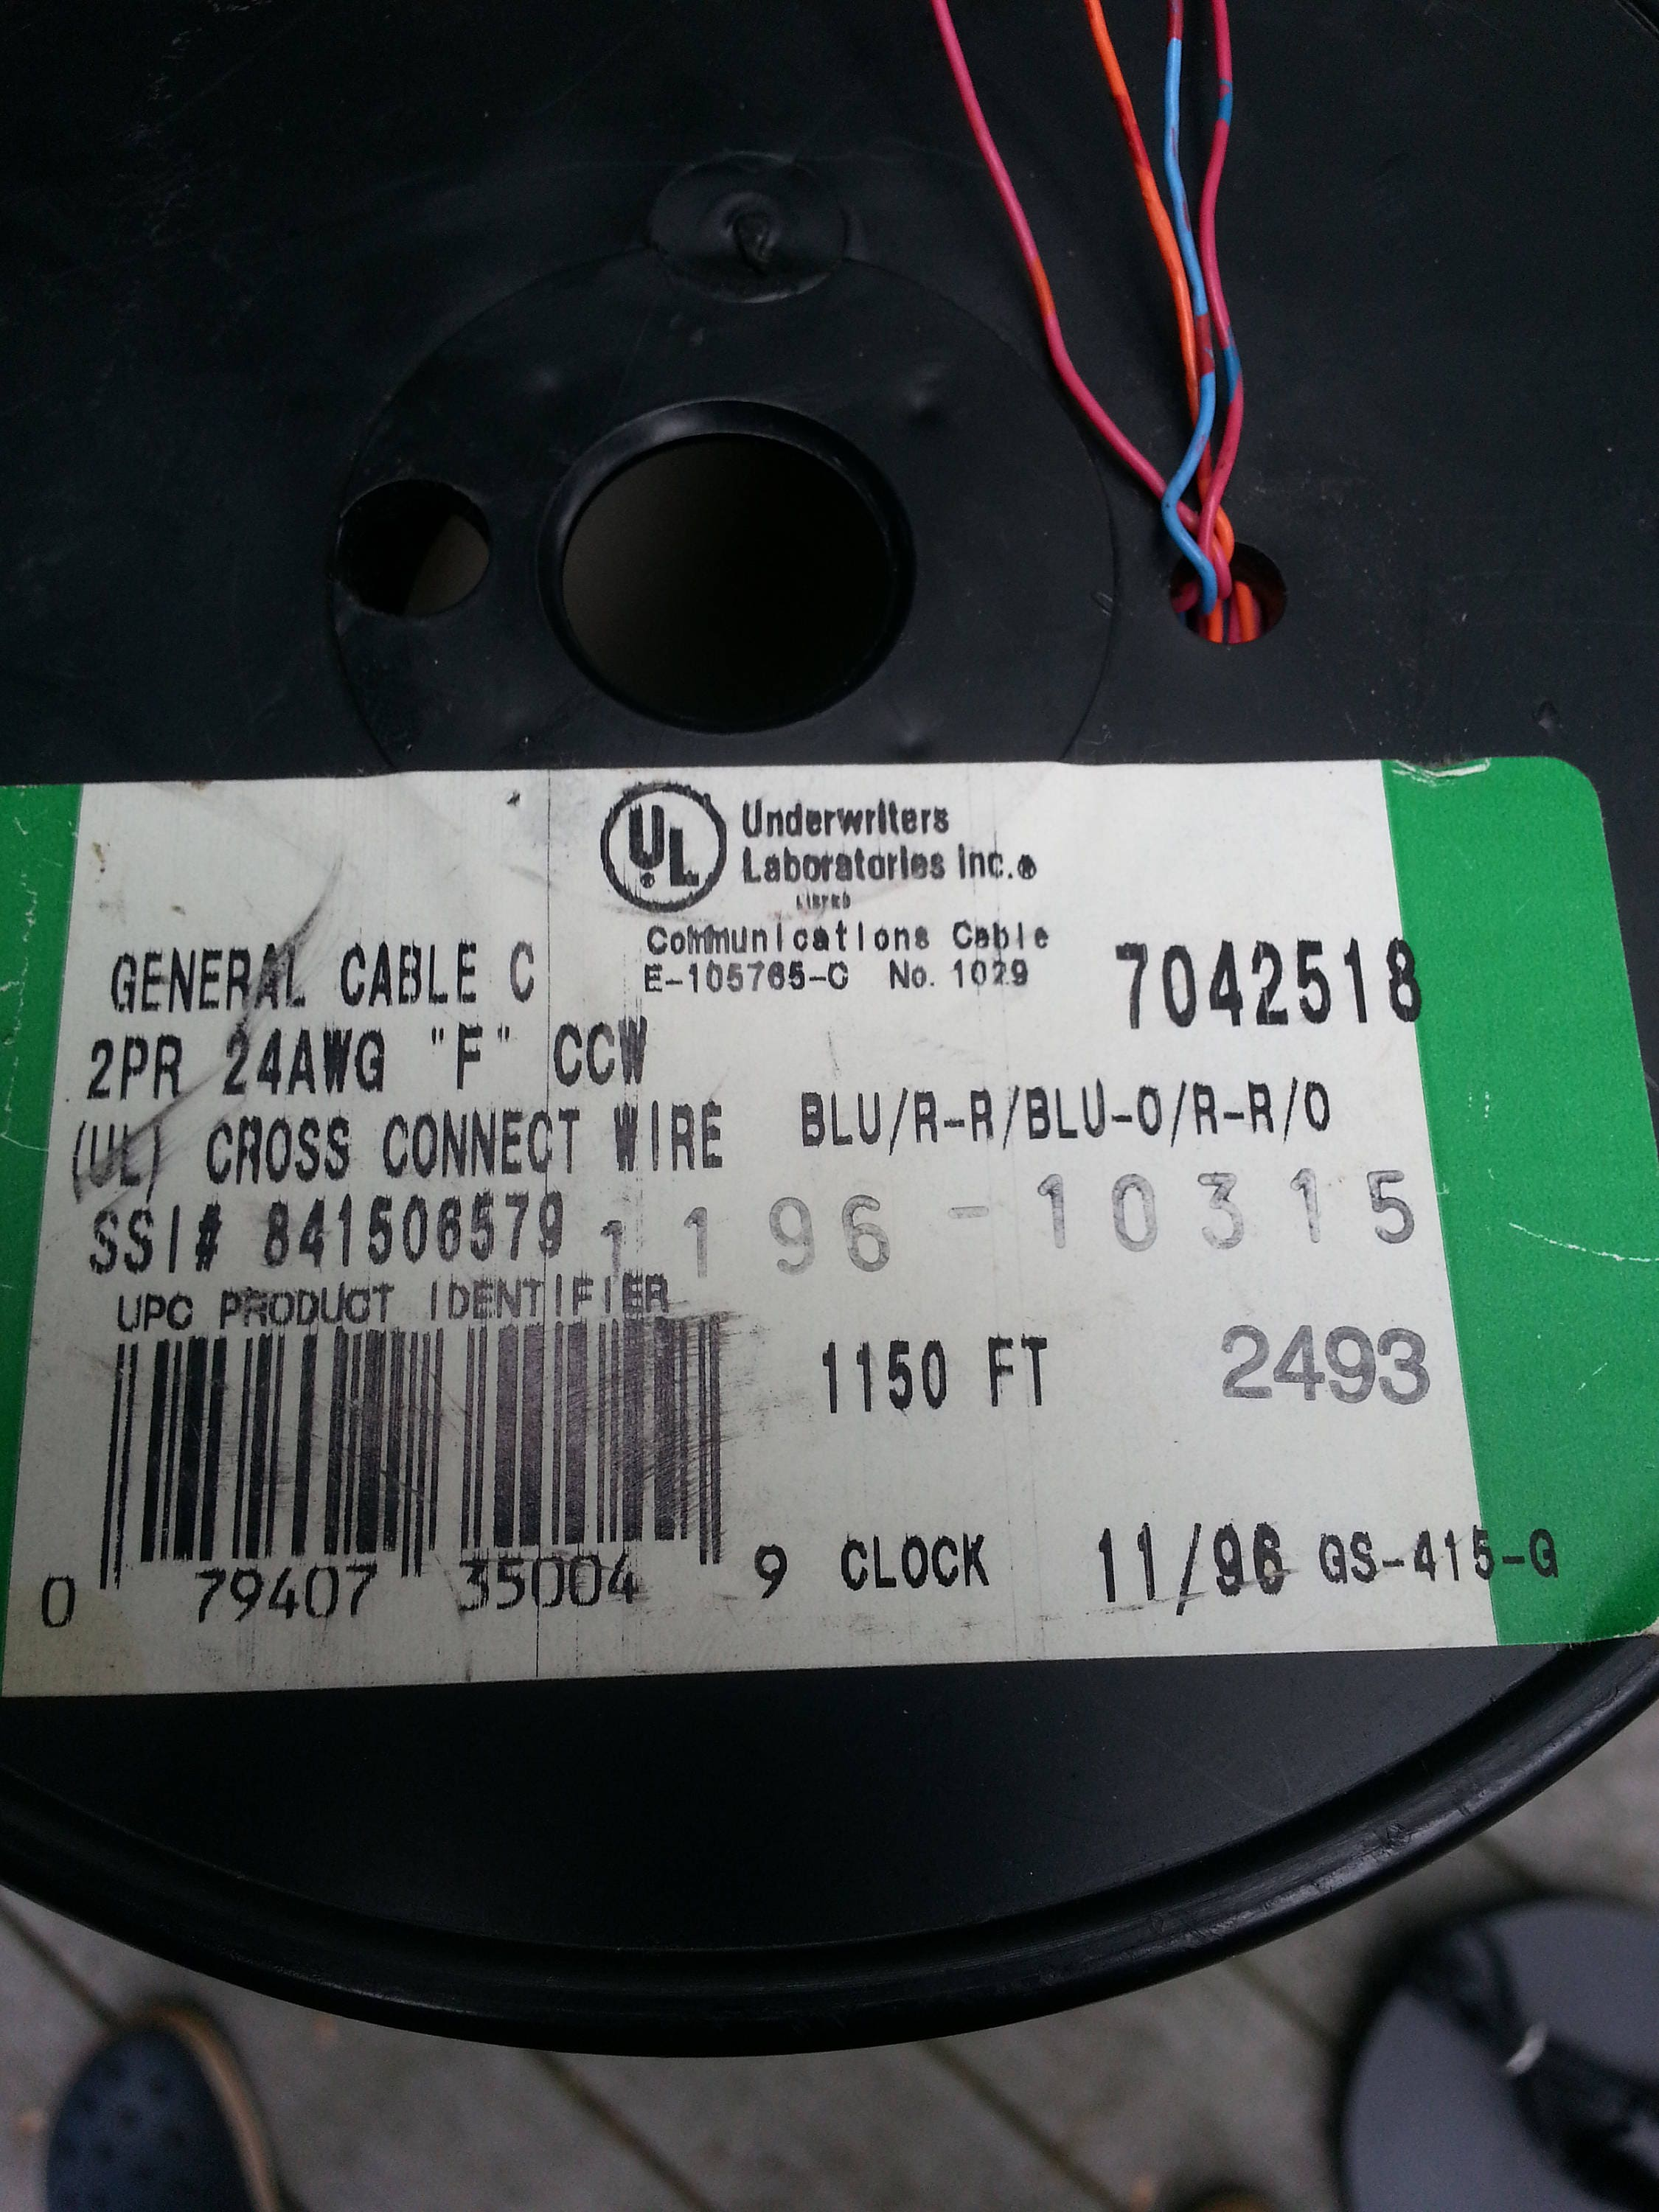 cross connect wire, 2 pr wire, general cable, copper wire, craft ...